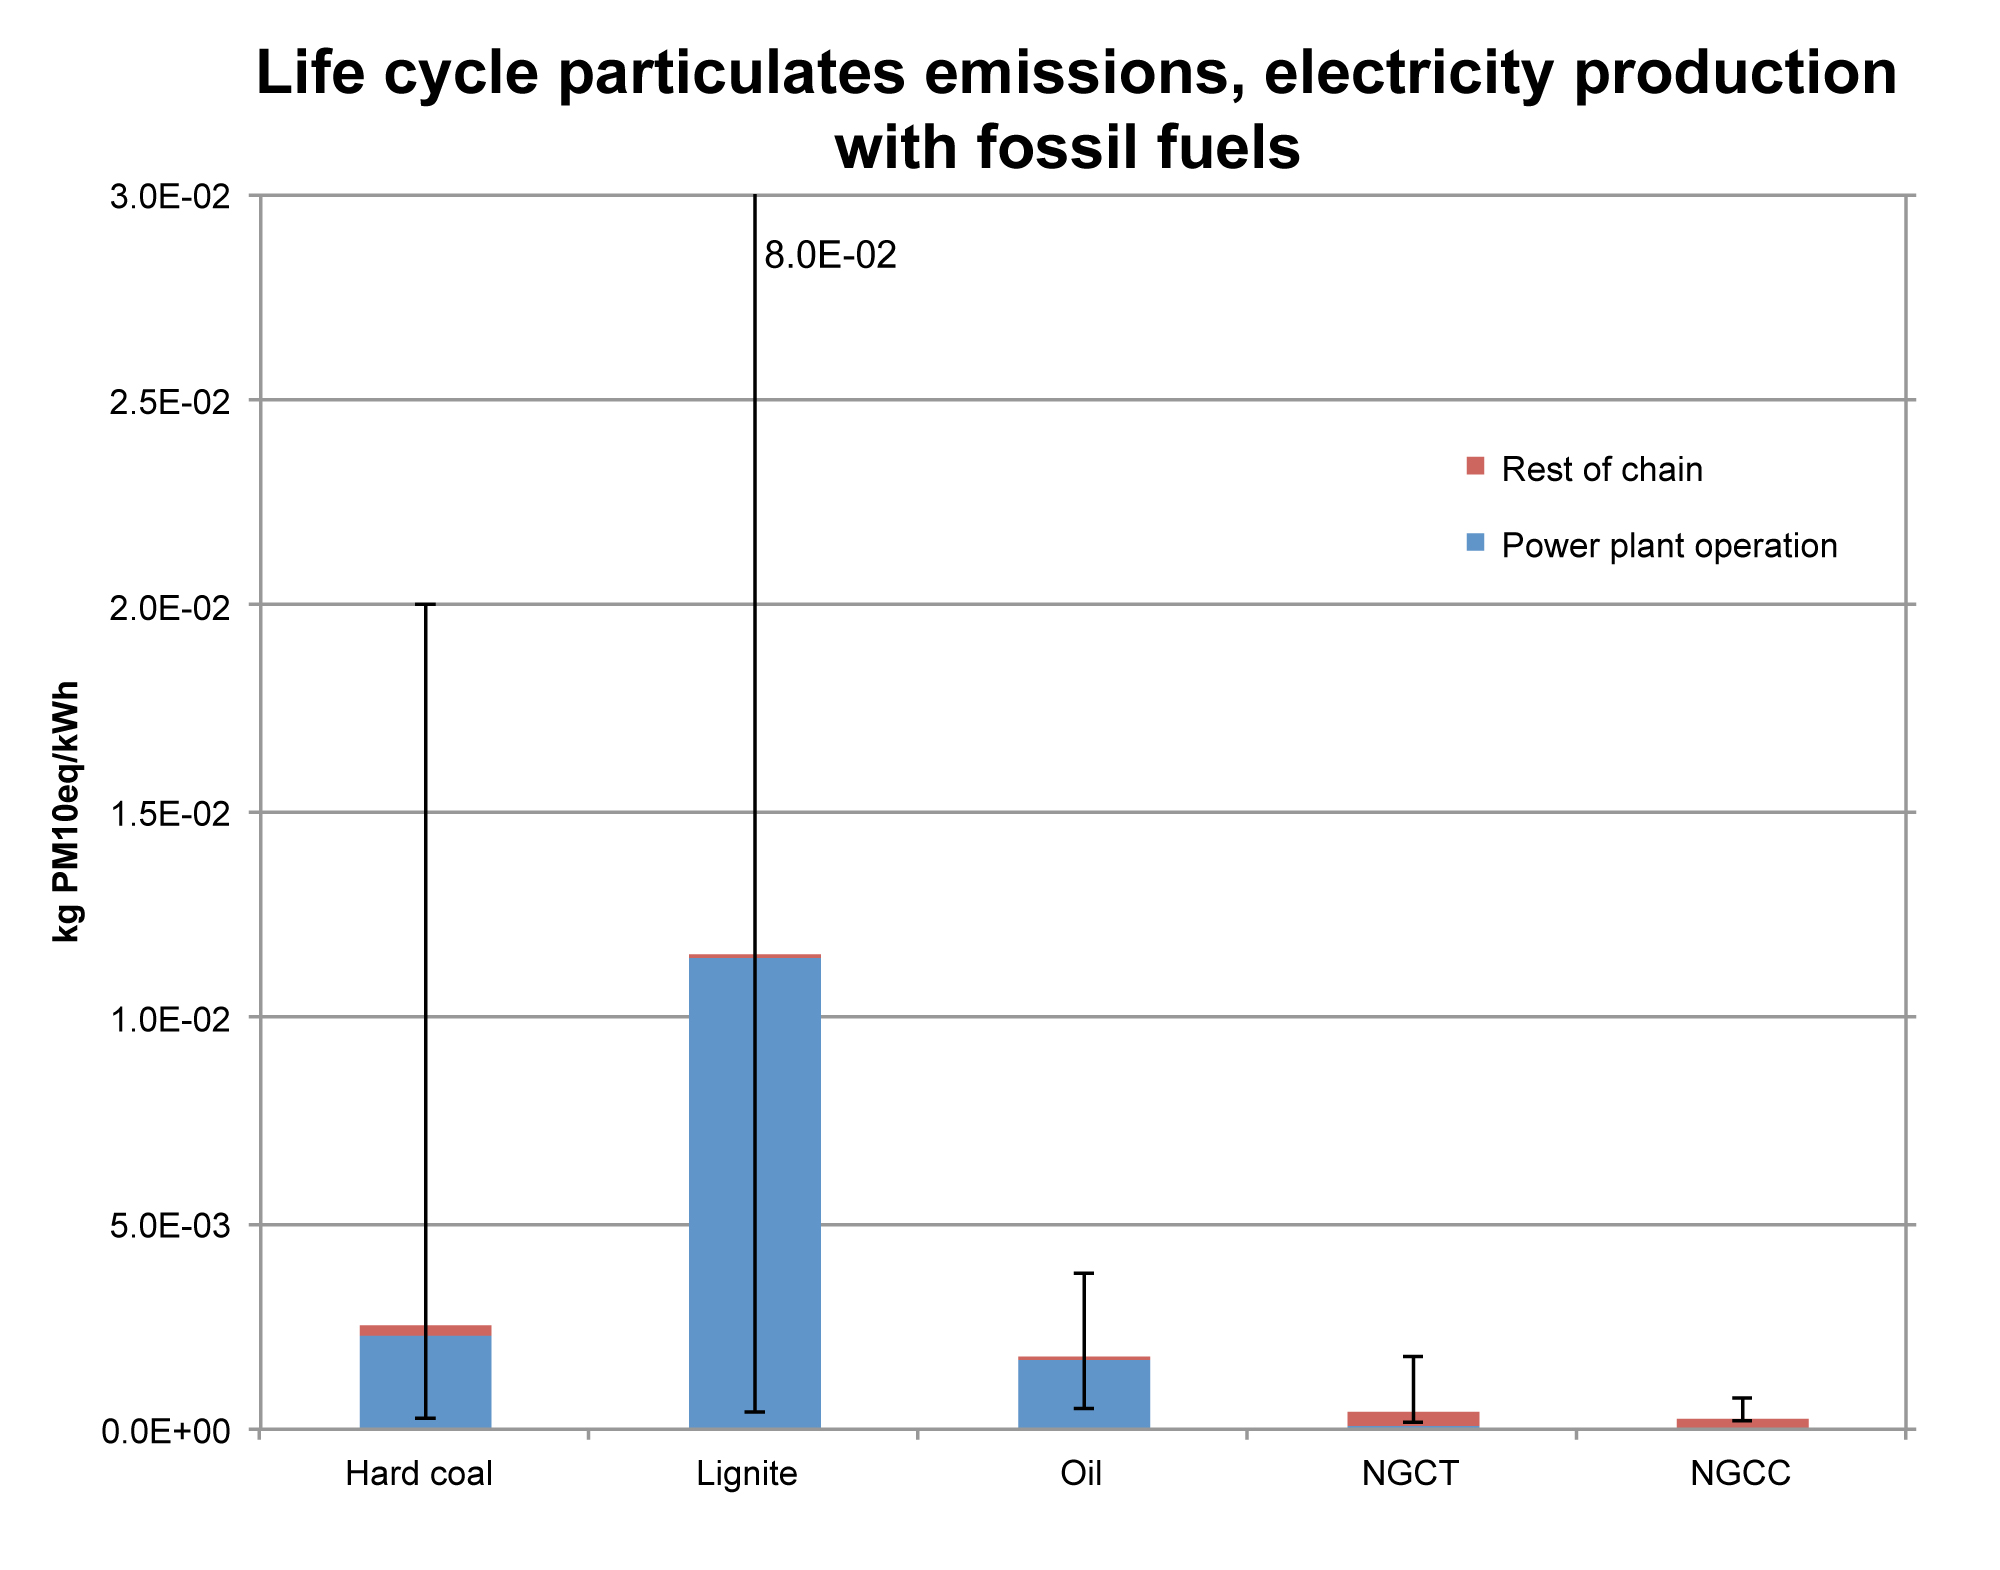 Life cycle (full chain) particulate matter emissions from electricity production with fossil fuels in kg PM10-equivalents per net kWh of electricity, calculated with the Life Cycle Impact Assessment method